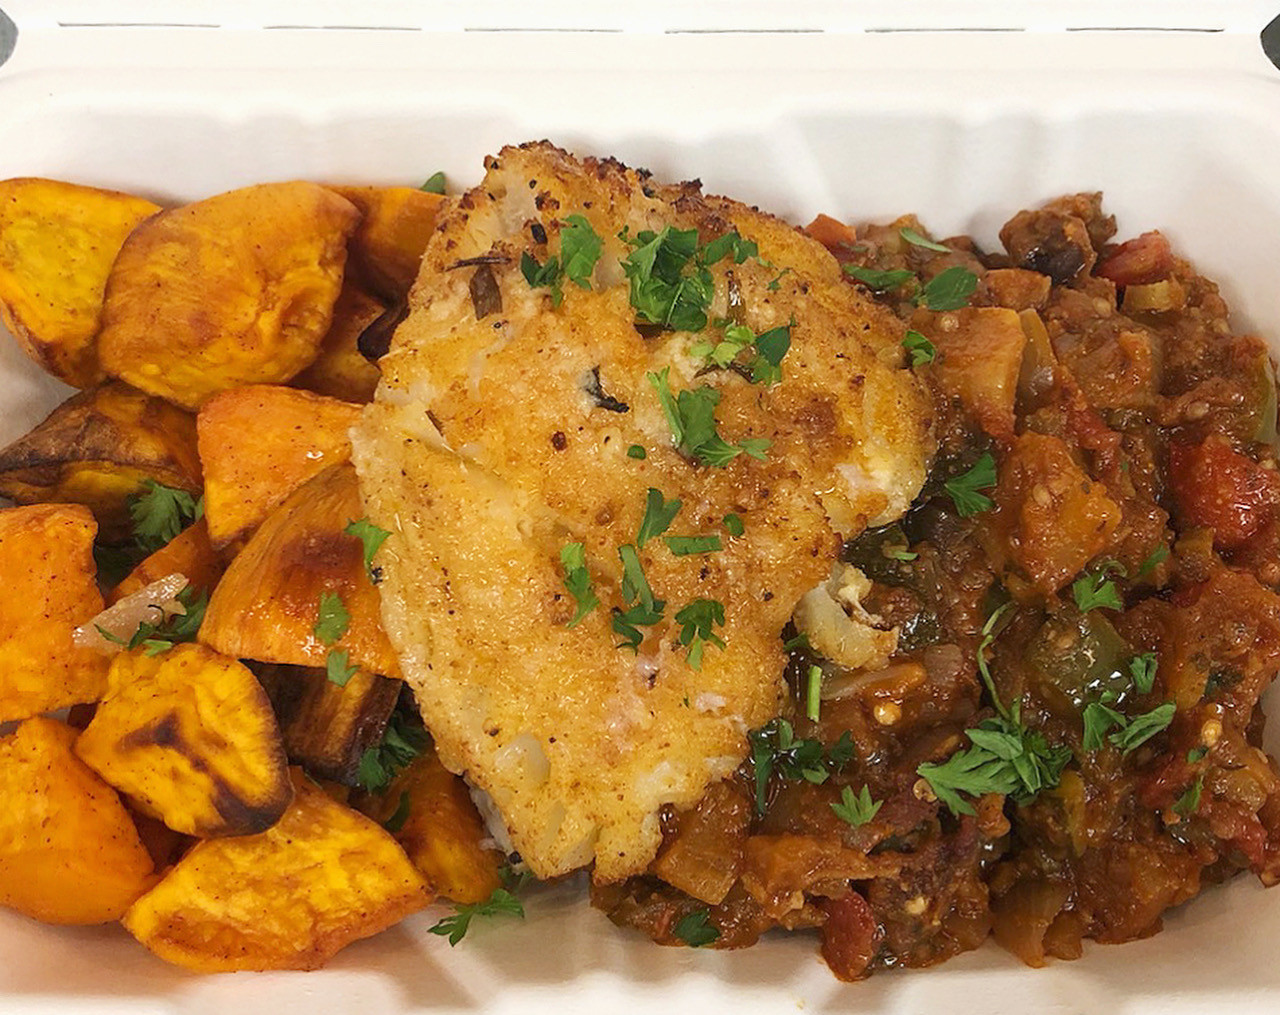 Rustic Ratatouille with Roasted Sweet Potatoes and Seasoned Cod Fillet